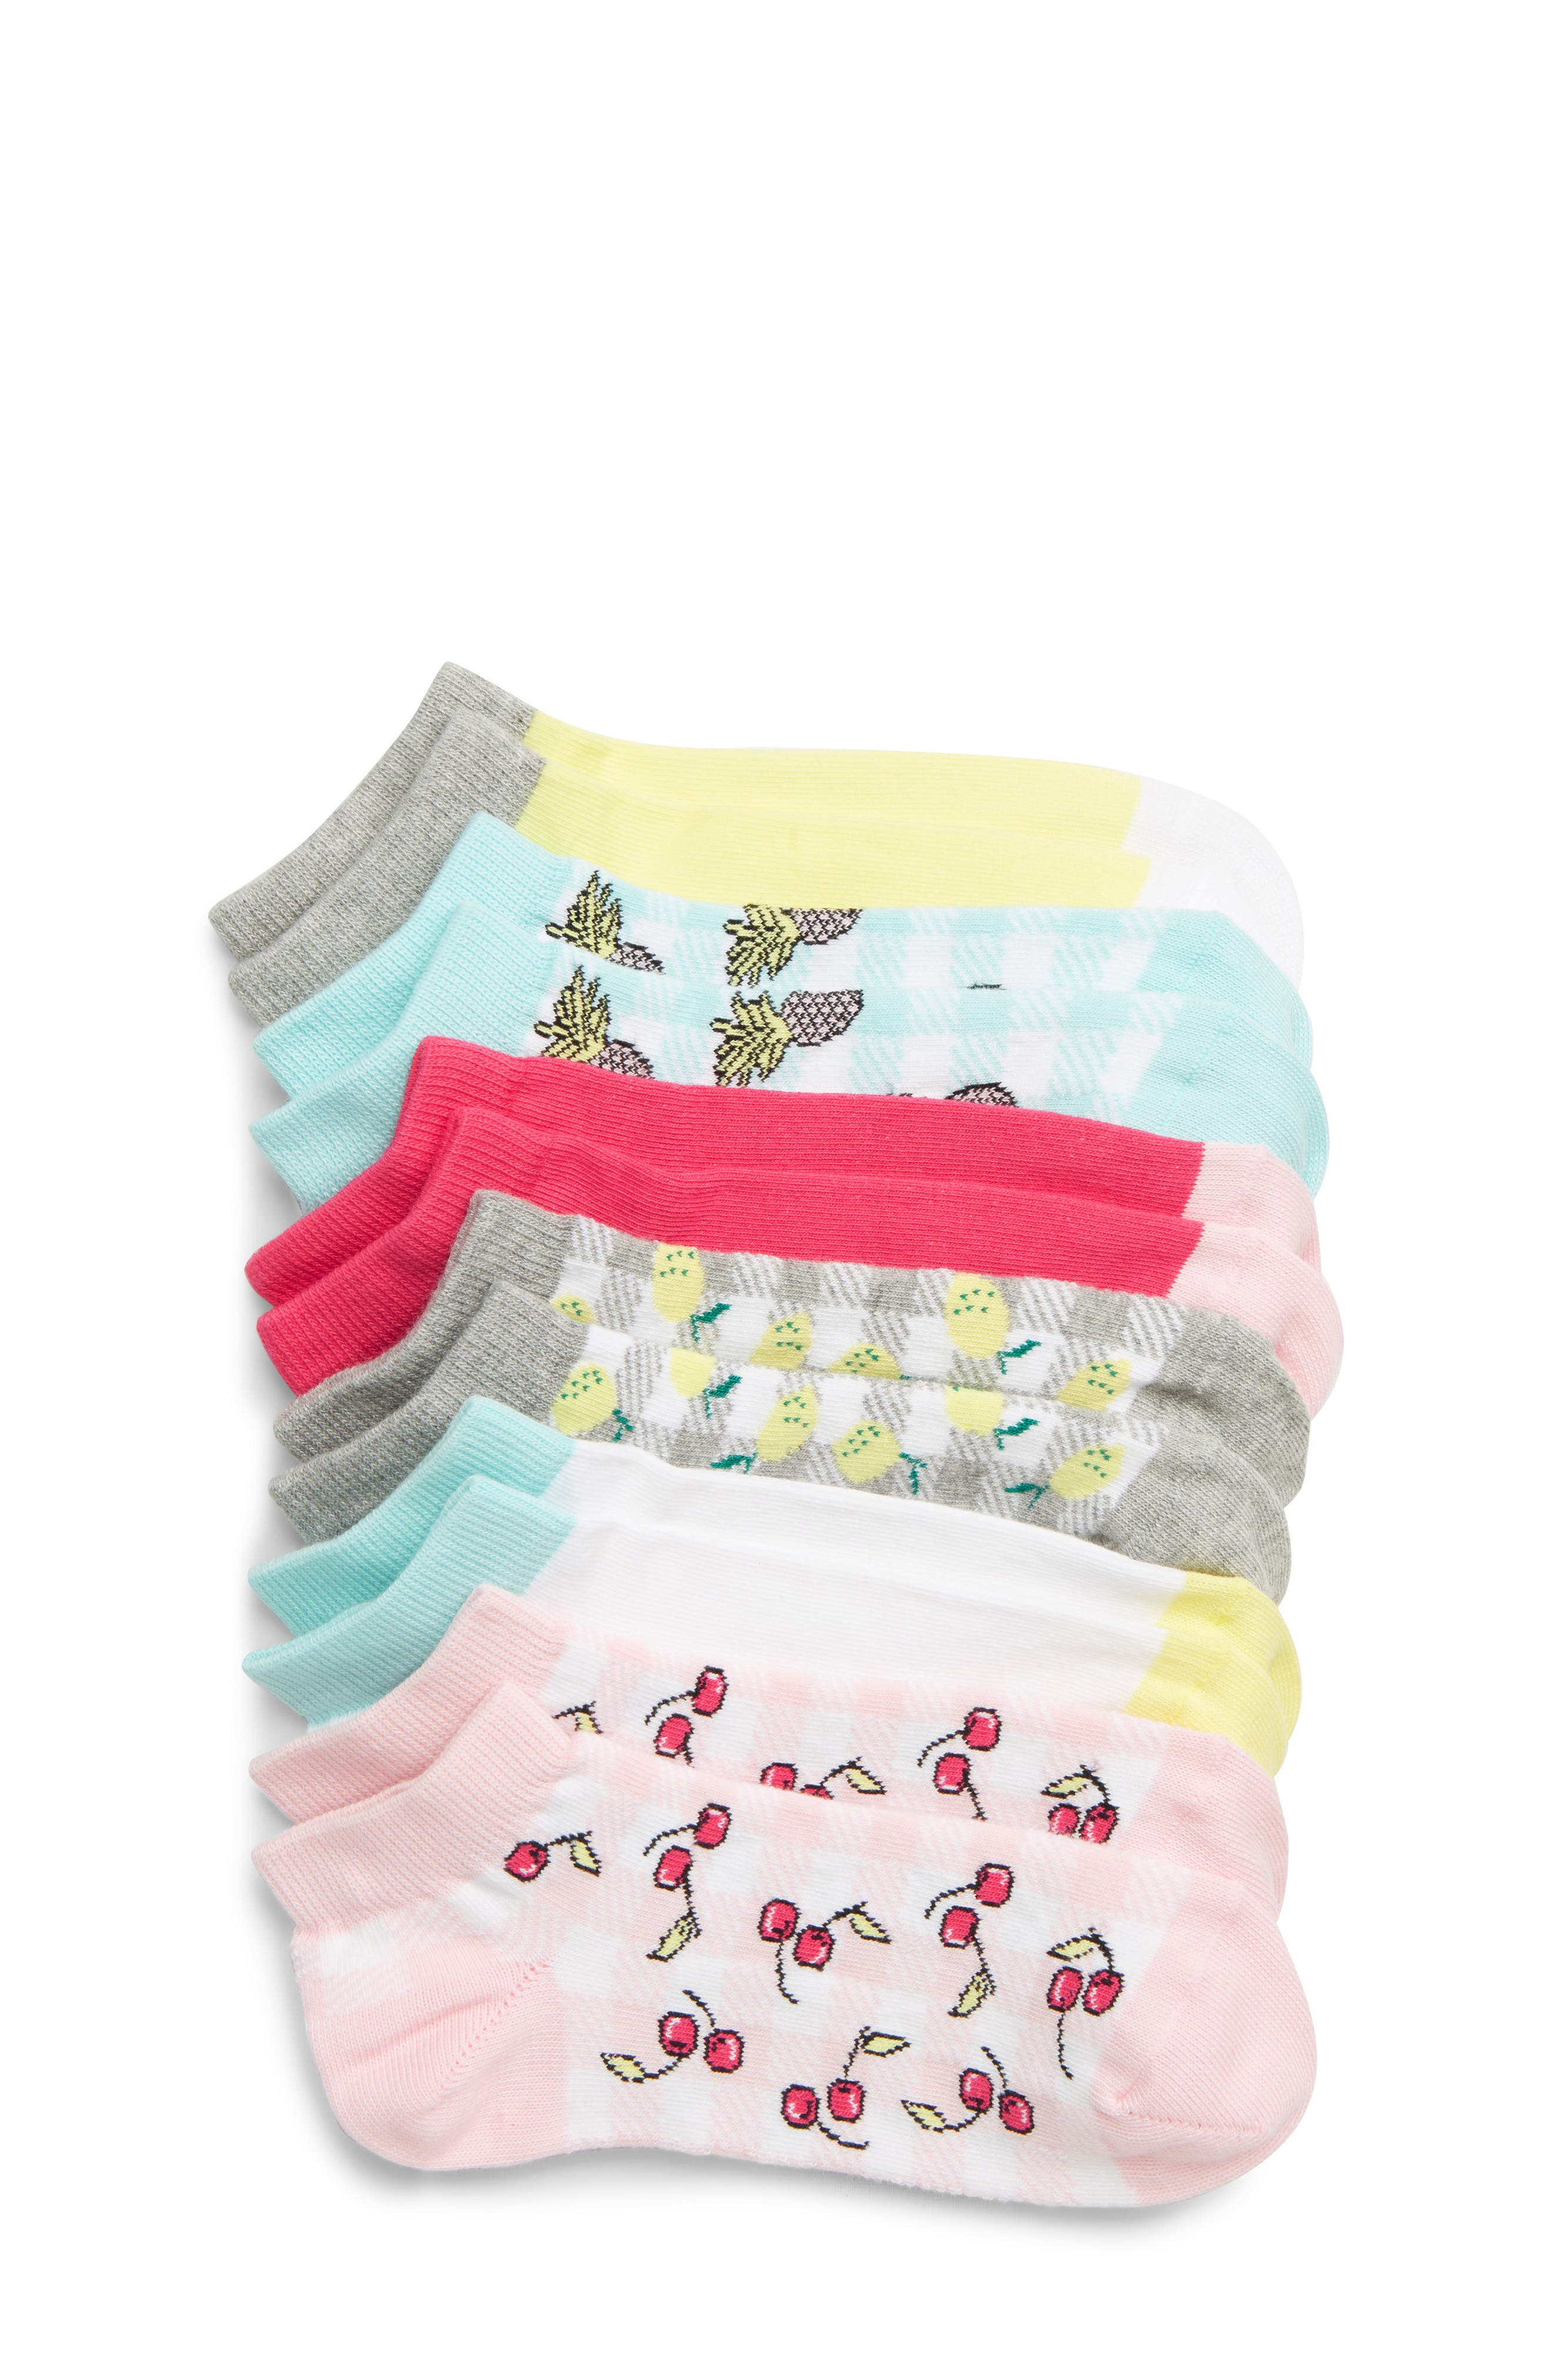 Toddler Girls Tucker  Tate 6Pack Ankle Socks Size 4585  Pink